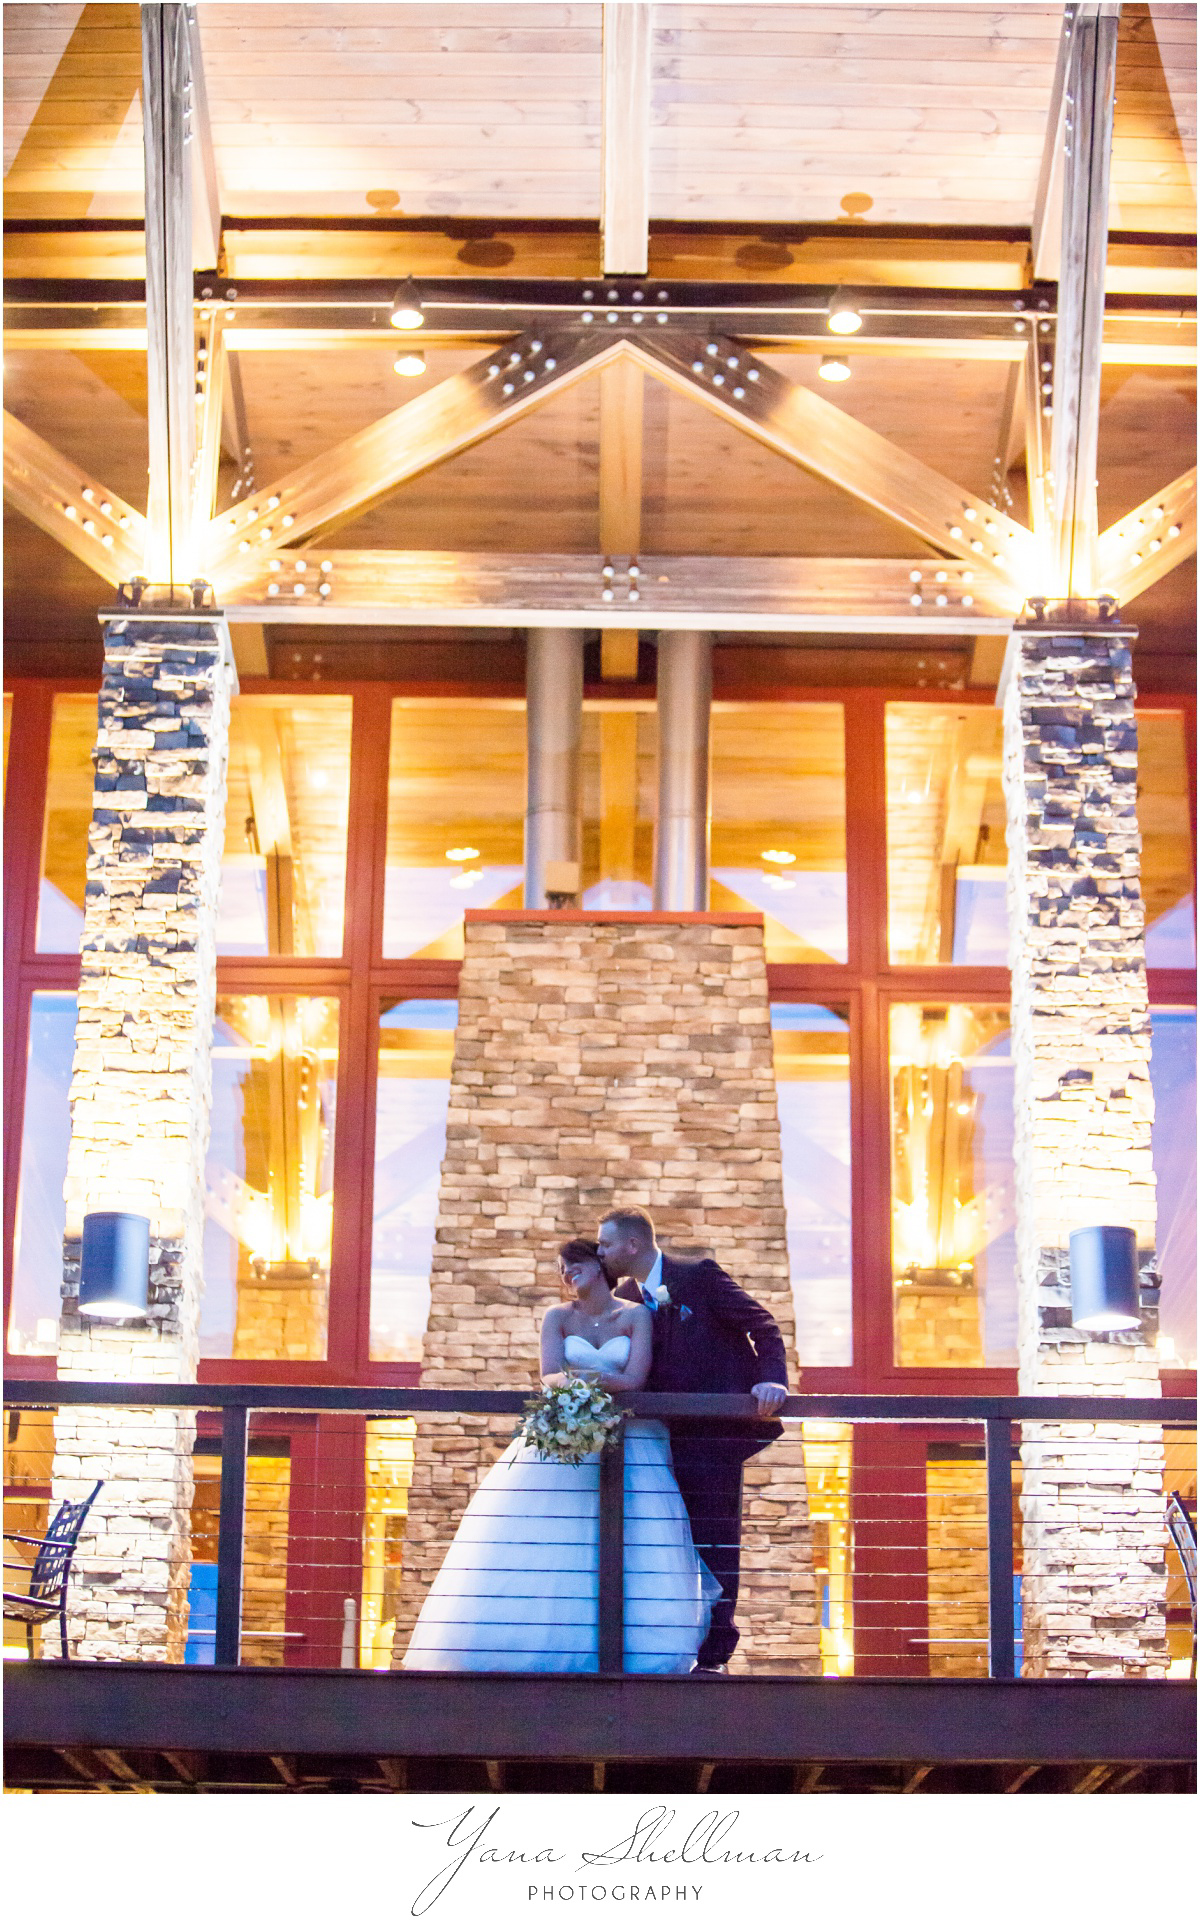 Bear Creek Mountain Resort Wedding Photos by Medford Wedding Photographer - Tiffany+Mike Wedding Photos